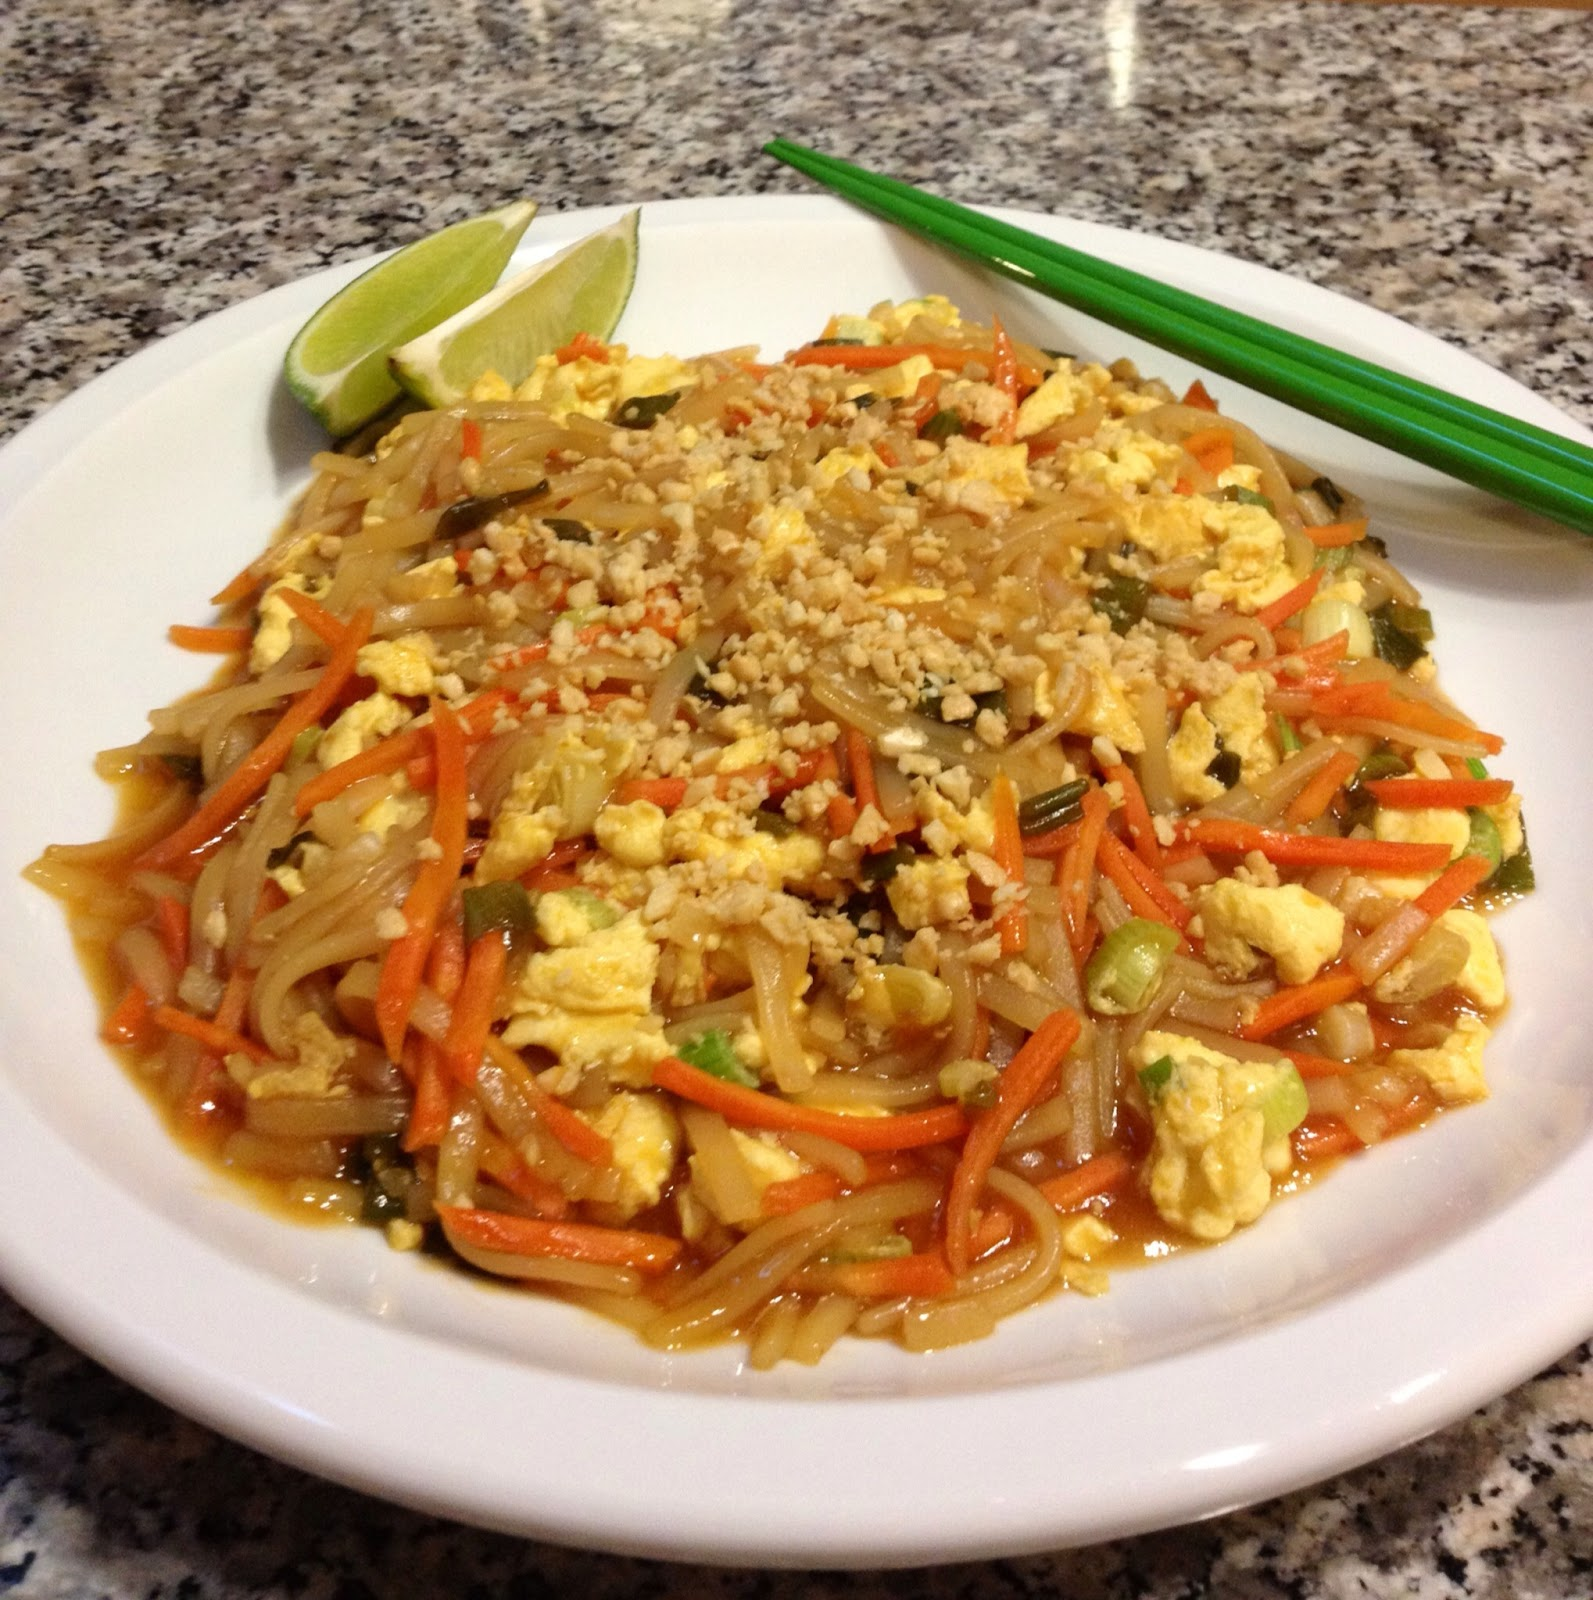 Our Weigh of Life: RECIPE: Vegetable Pad Thai (10 points+)